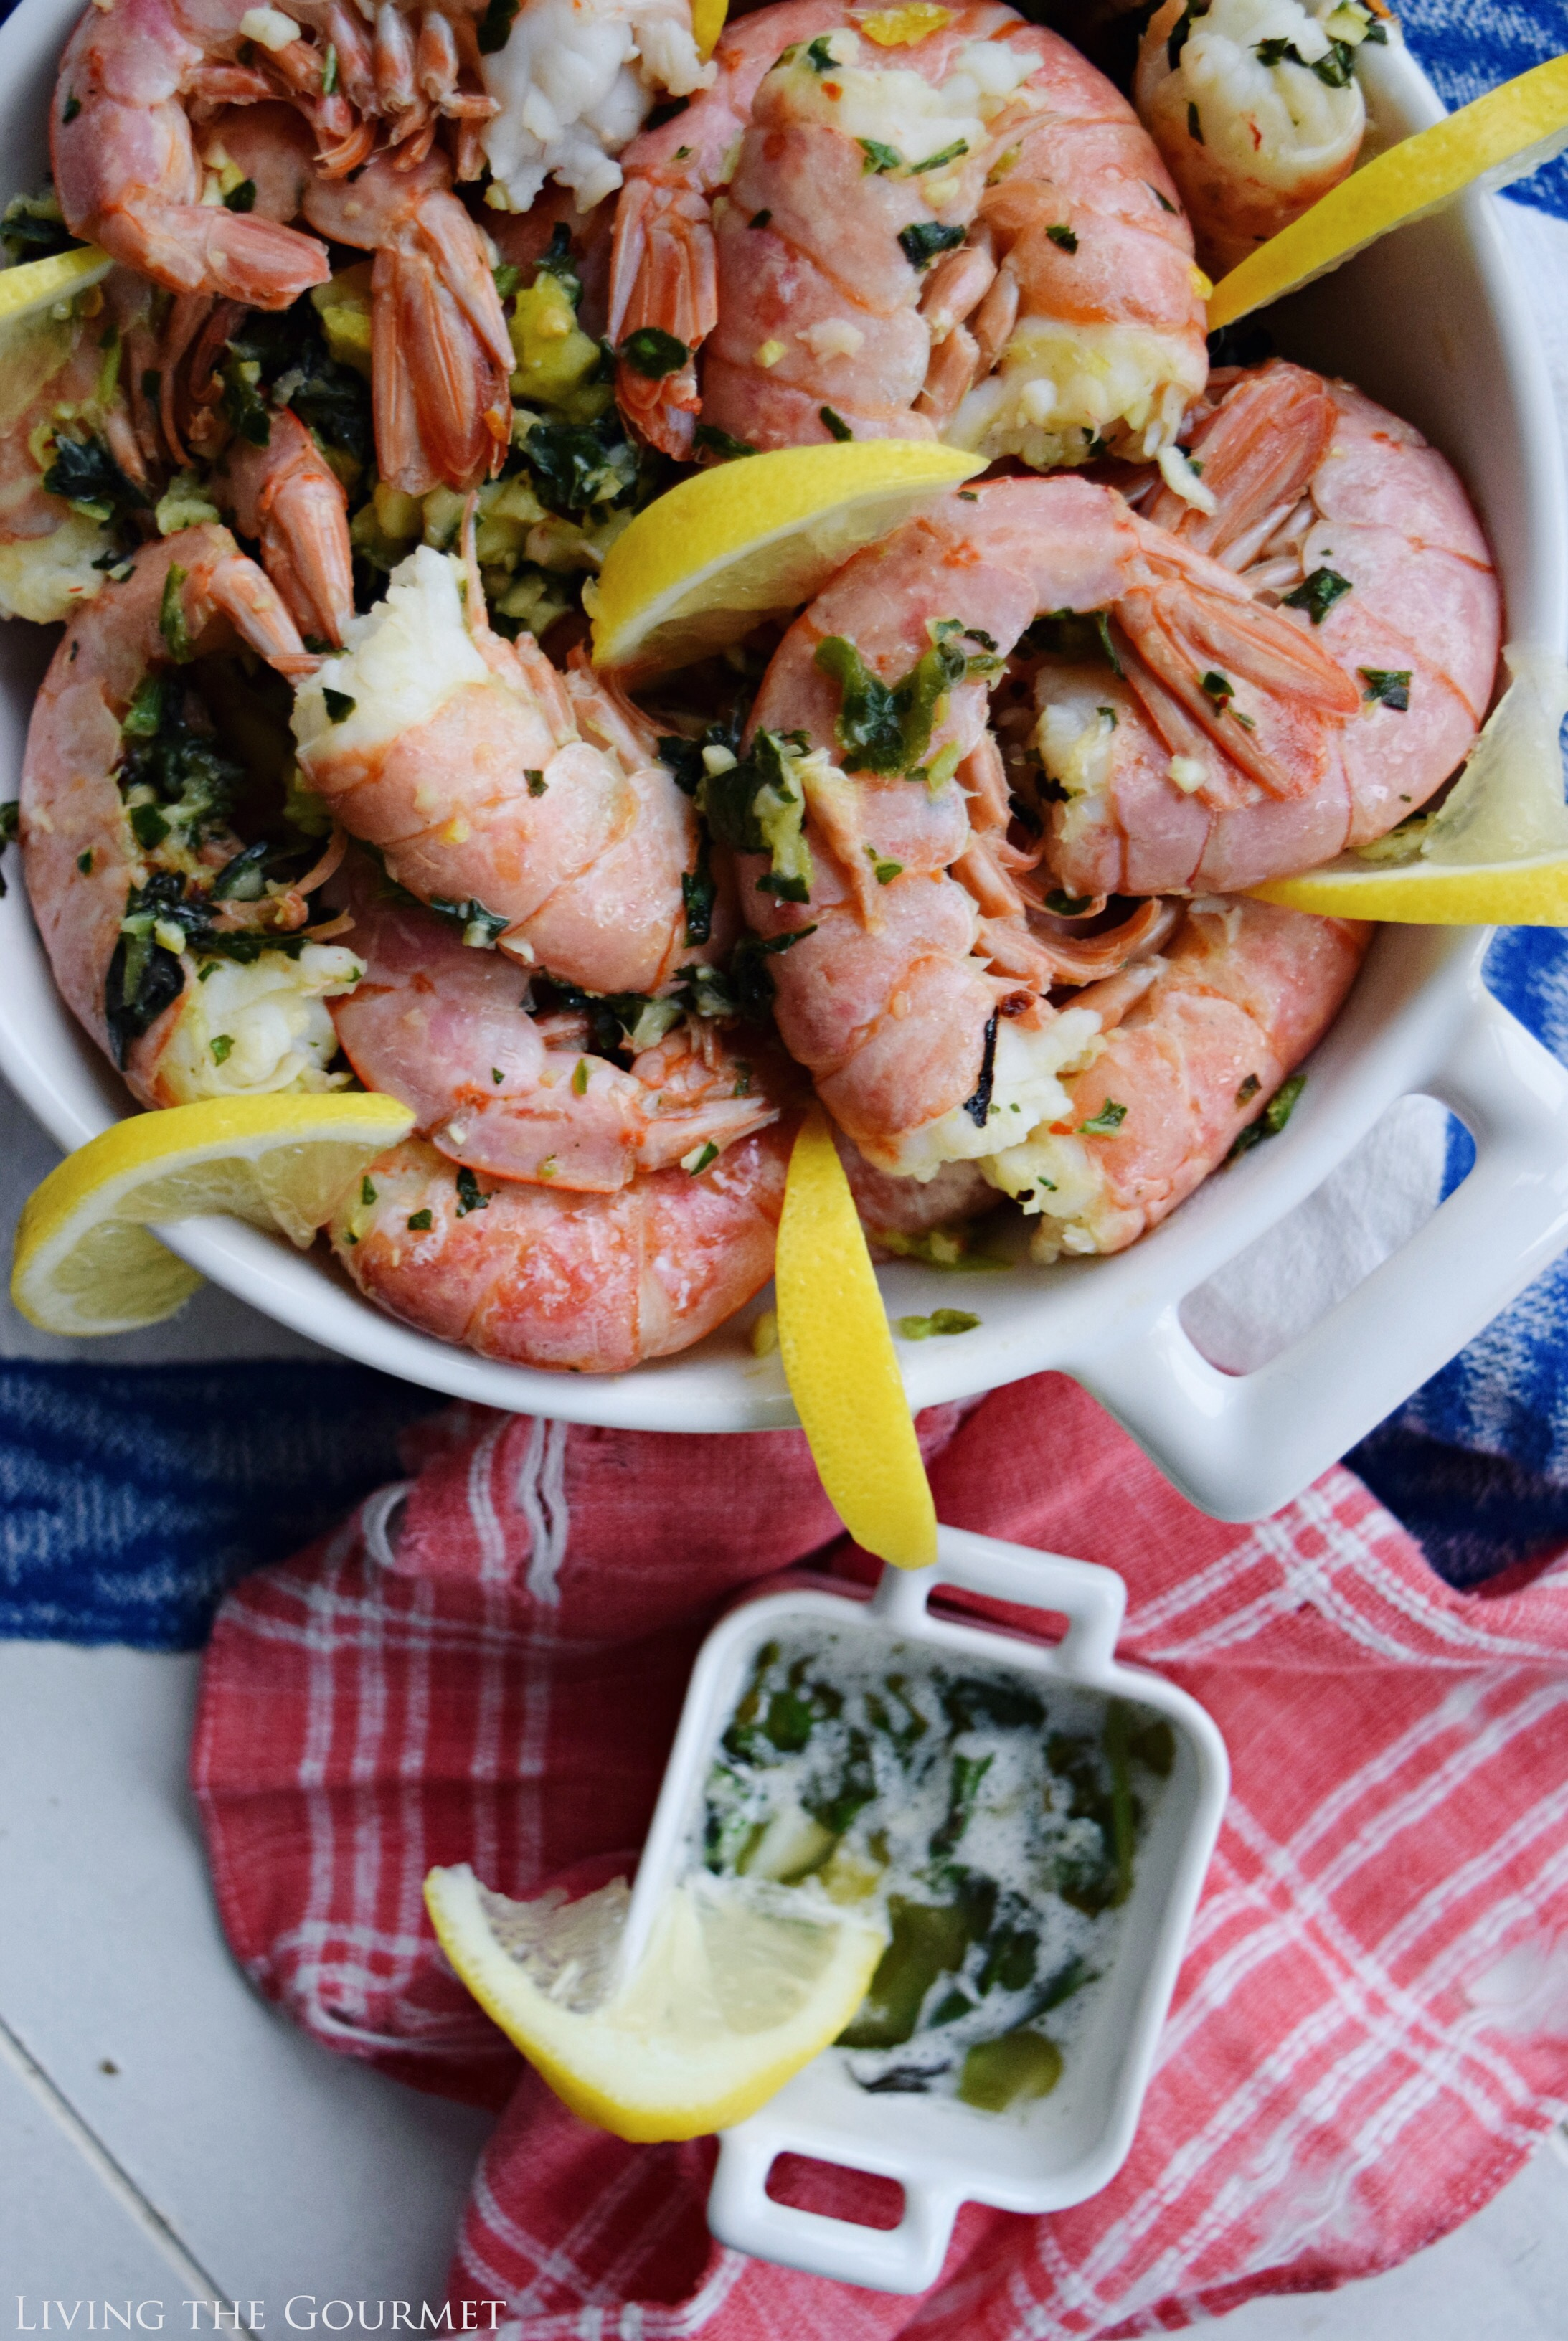 Living the Gourmet: French Summer Dining